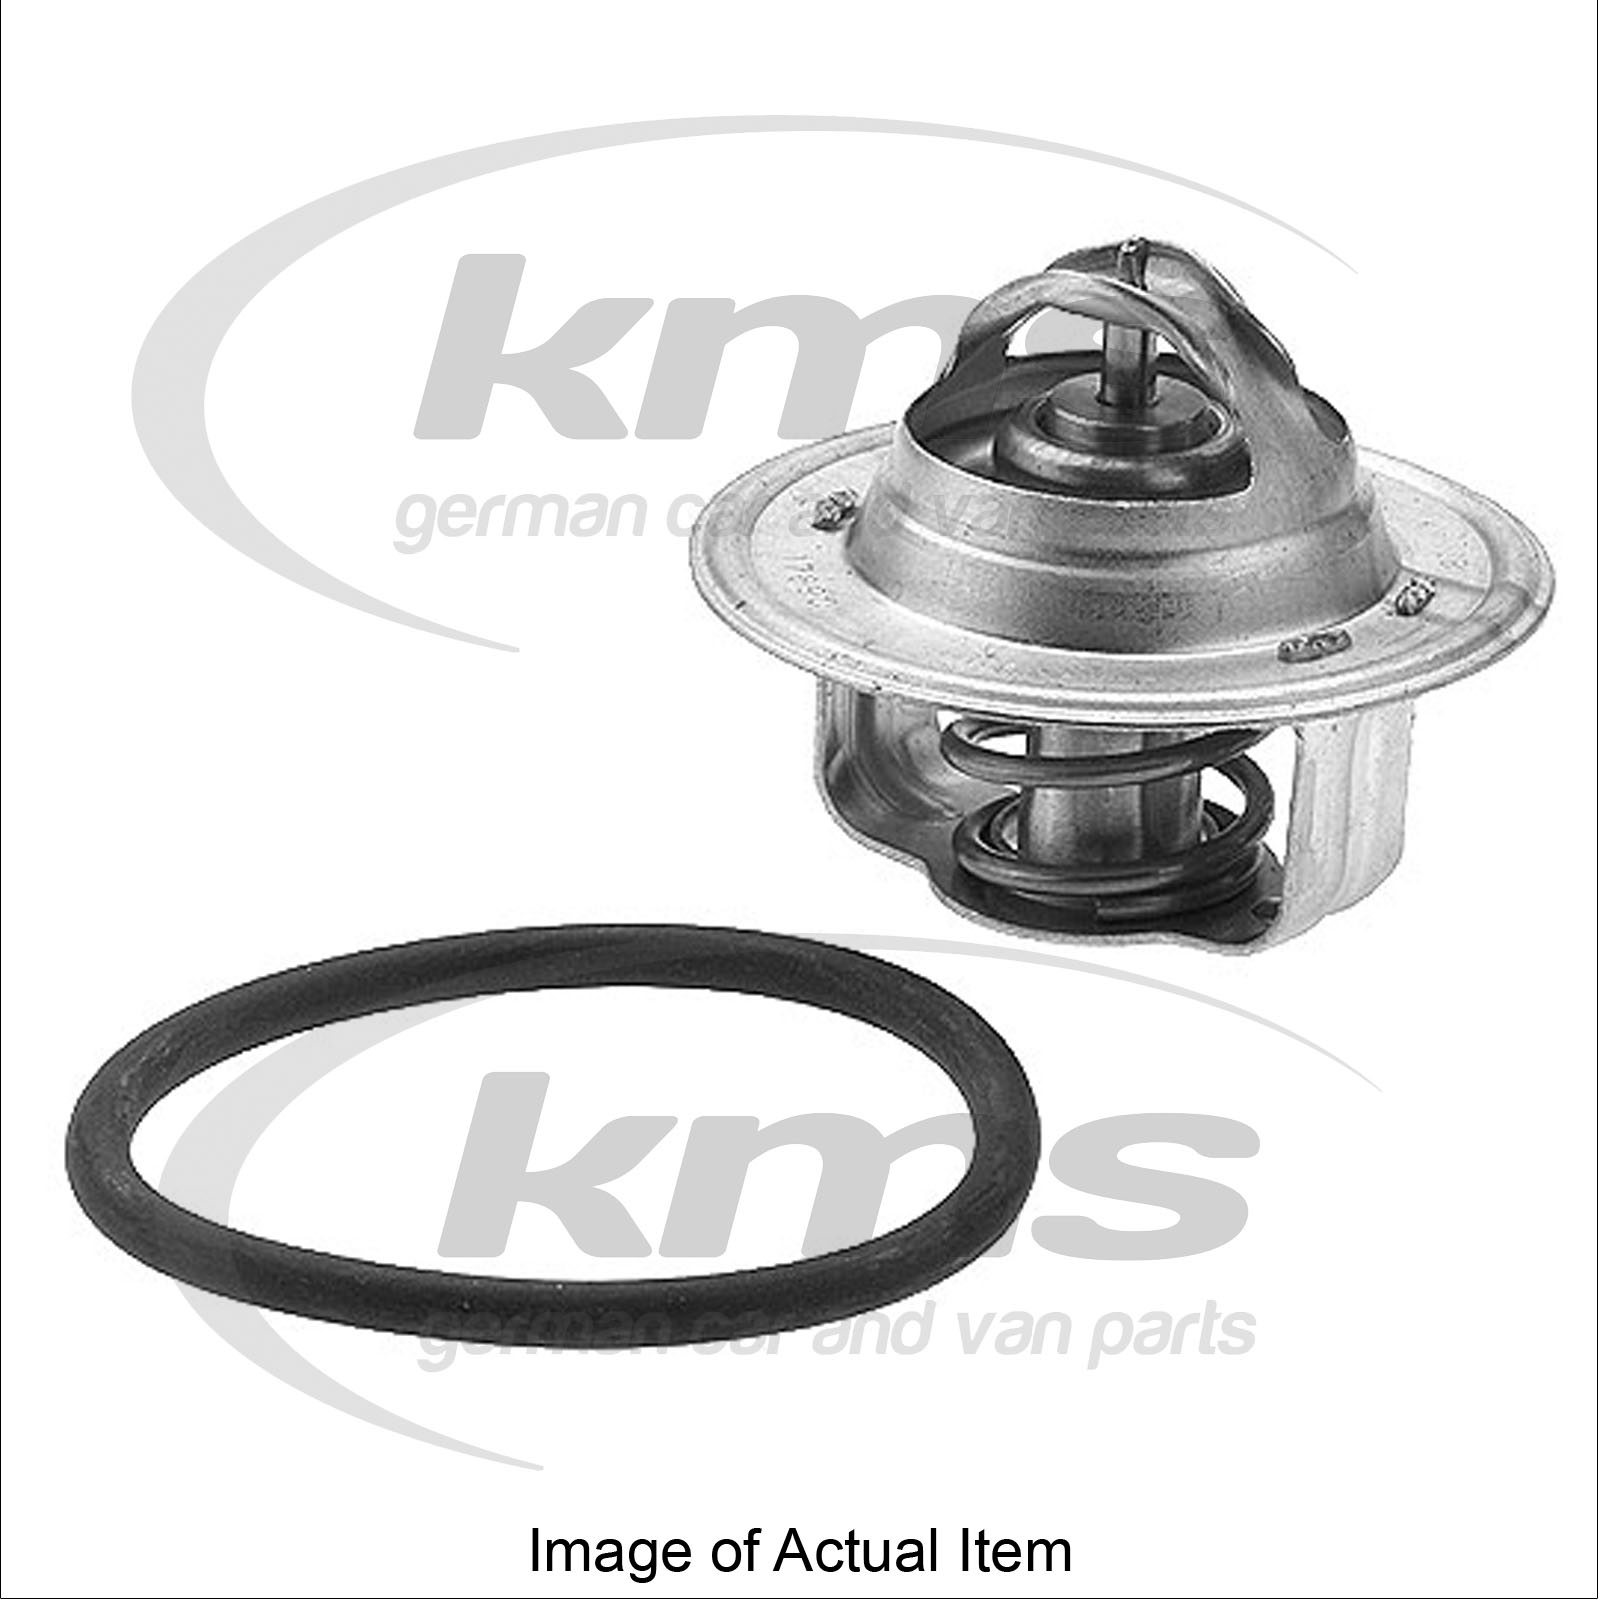 thermostat vw golf hatchback gti mk 4 1998 2006 1 8l 125 bhp top german qual. Black Bedroom Furniture Sets. Home Design Ideas